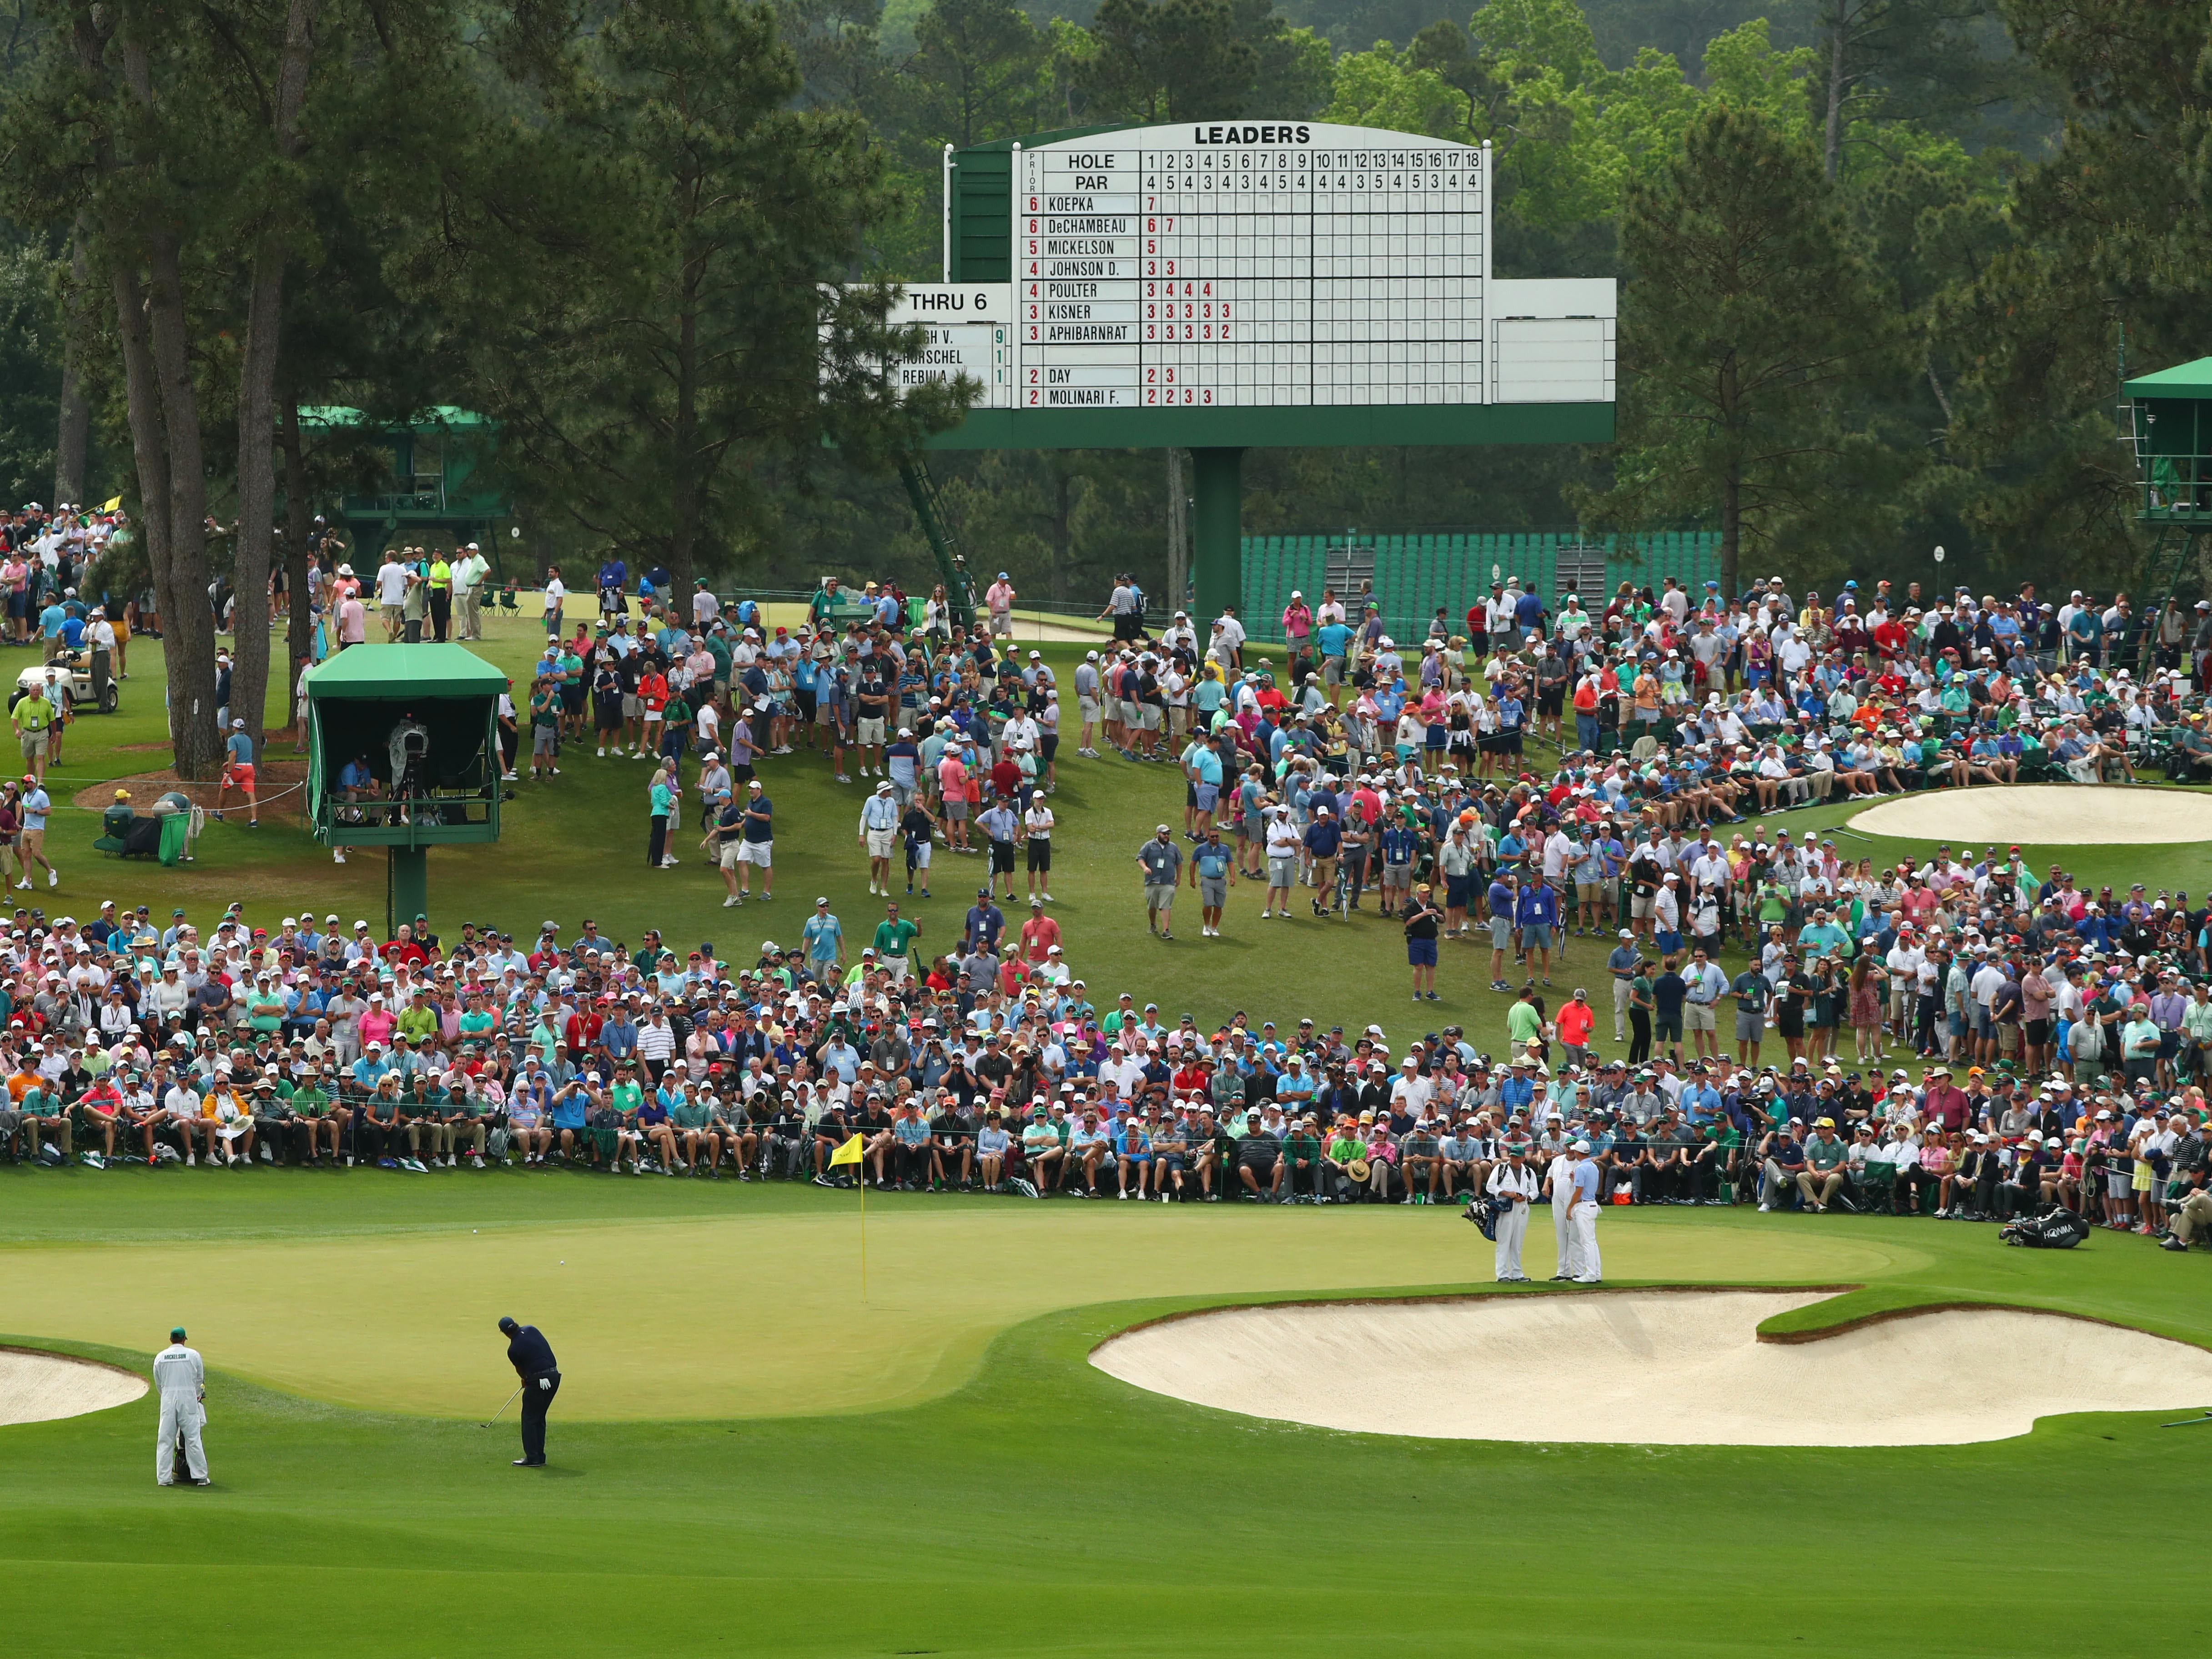 Apr 12, 2019; Augusta, GA, USA; Phil Mickelson chips onto the 2nd green during the second round of The Masters golf tournament at Augusta National Golf Club. Mandatory Credit: Rob Schumacher-USA TODAY Sports